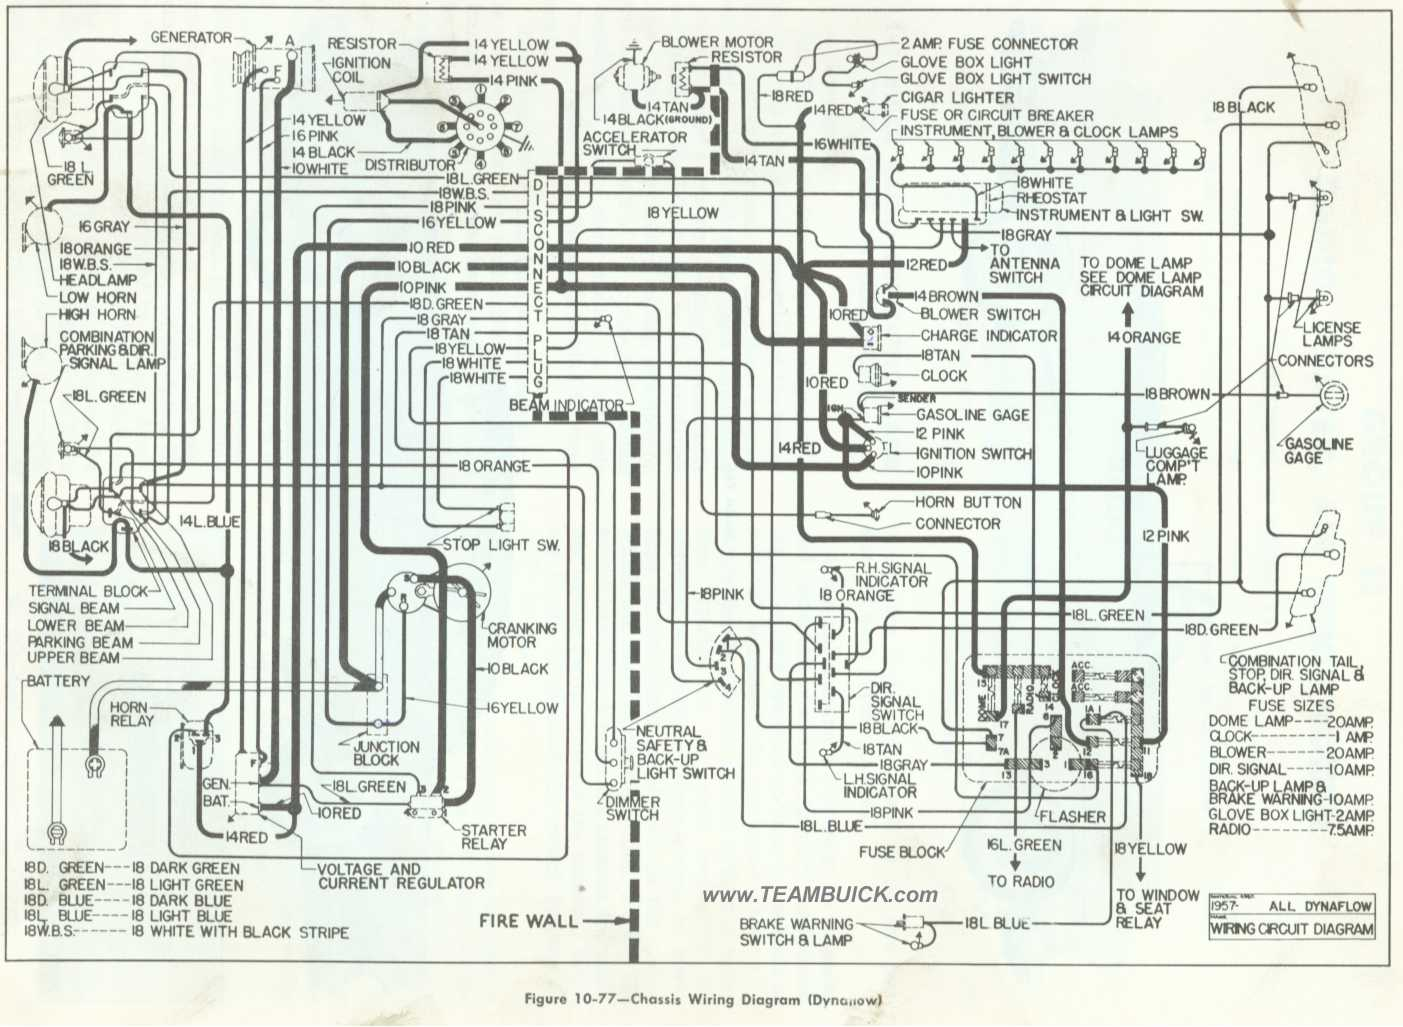 Yanmar B Type Instrument Panel Wiring Diagram Starting Know About 2gm Engine Get Free Image